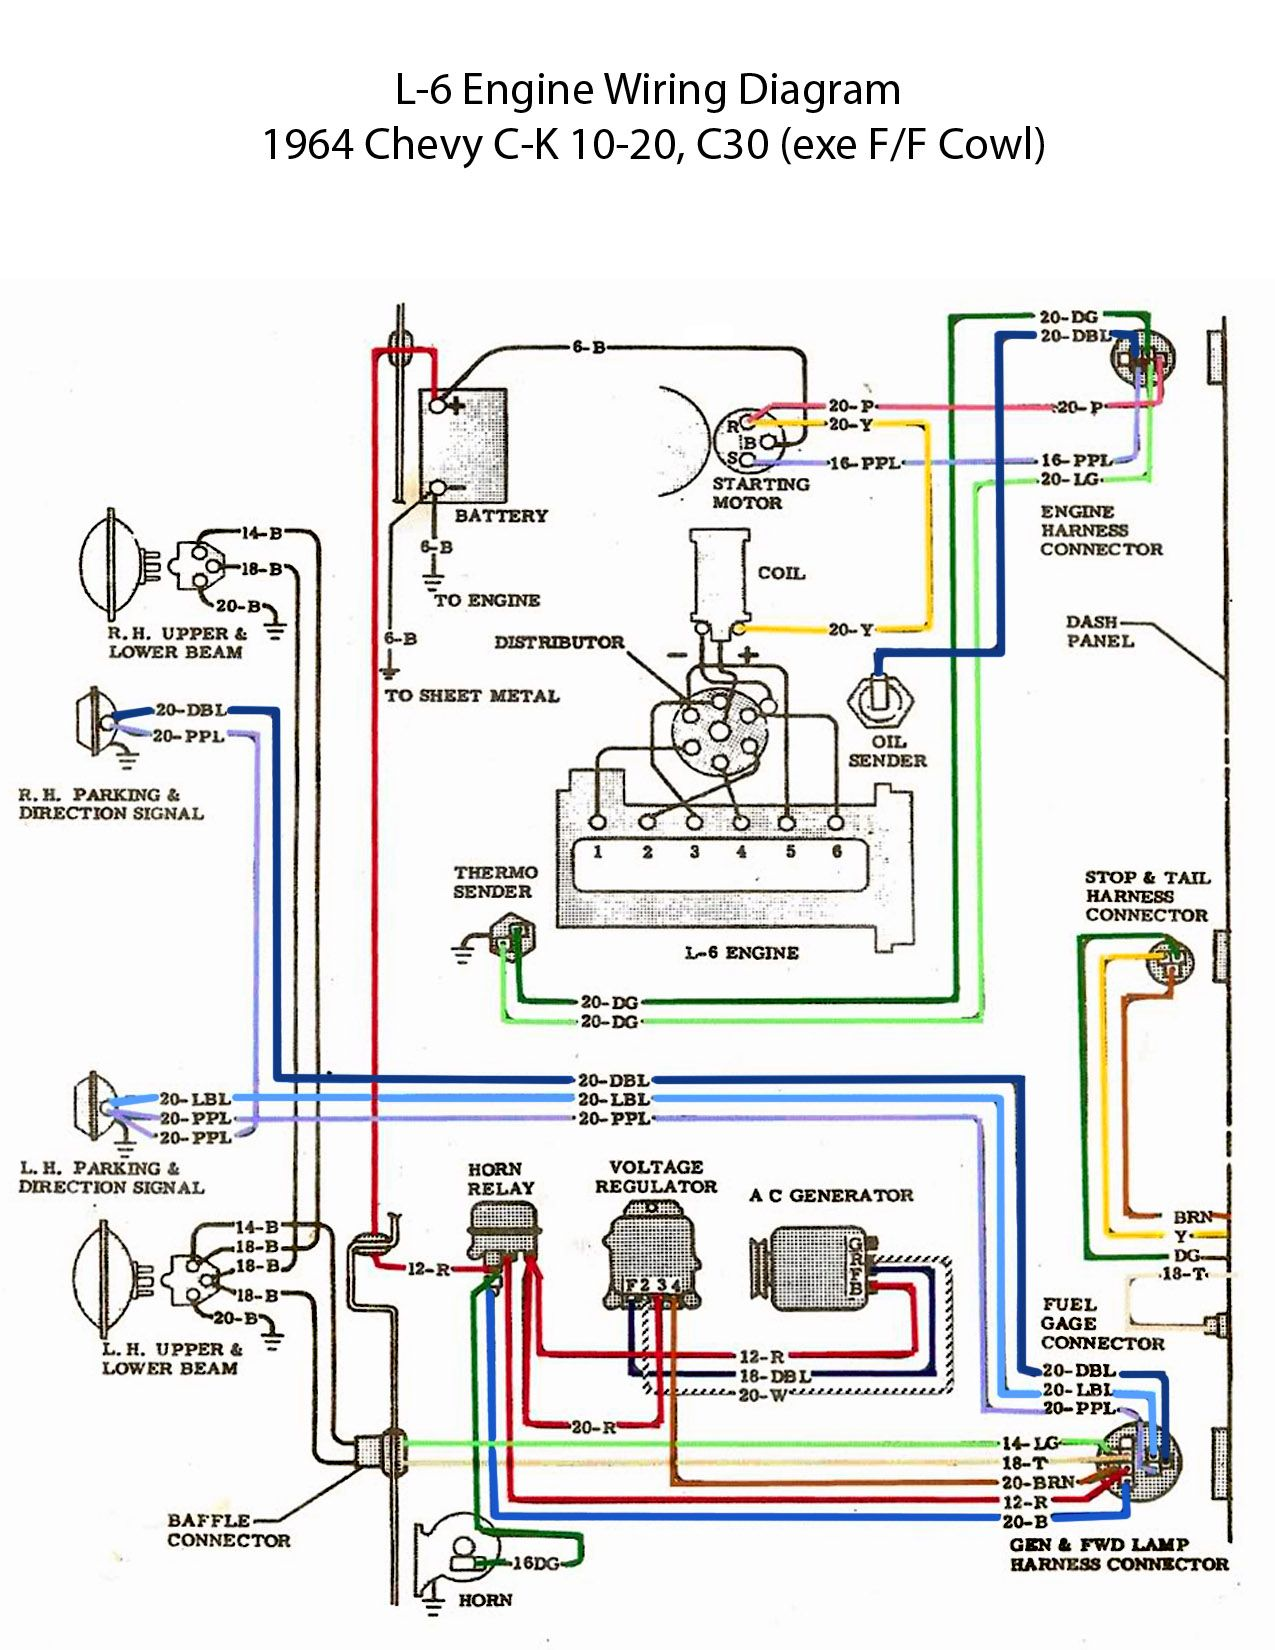 52f445b9f6cba1e2ba90979cb5234ed8 electric l 6 engine wiring diagram '60s chevy c10 wiring  at gsmportal.co